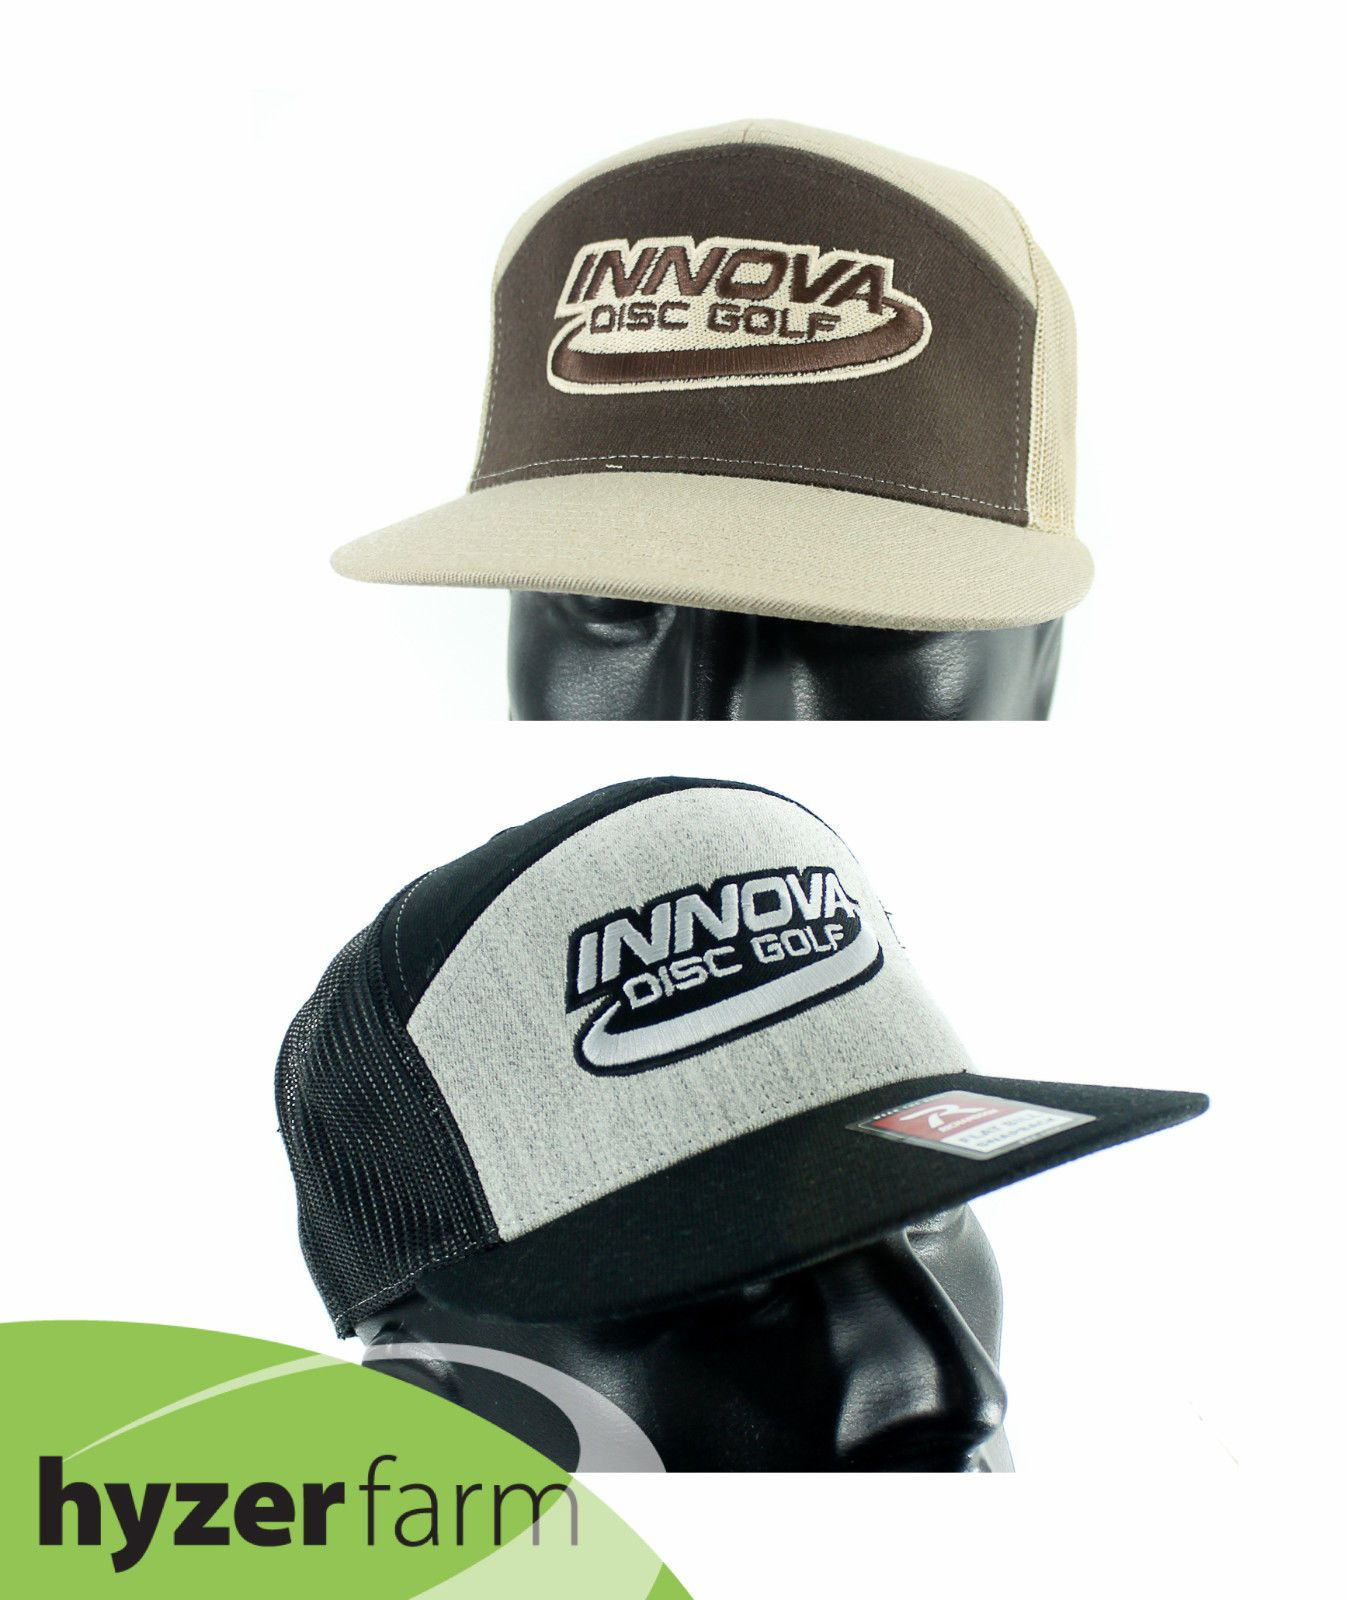 Disc Golf Accessories 184360  Innova Logo Flat Bill Snap Back Mesh Hat   Pick Color  Hyzer Farm Disc Golf -  BUY IT NOW ONLY   21.95 on eBay! 79b425f690f8